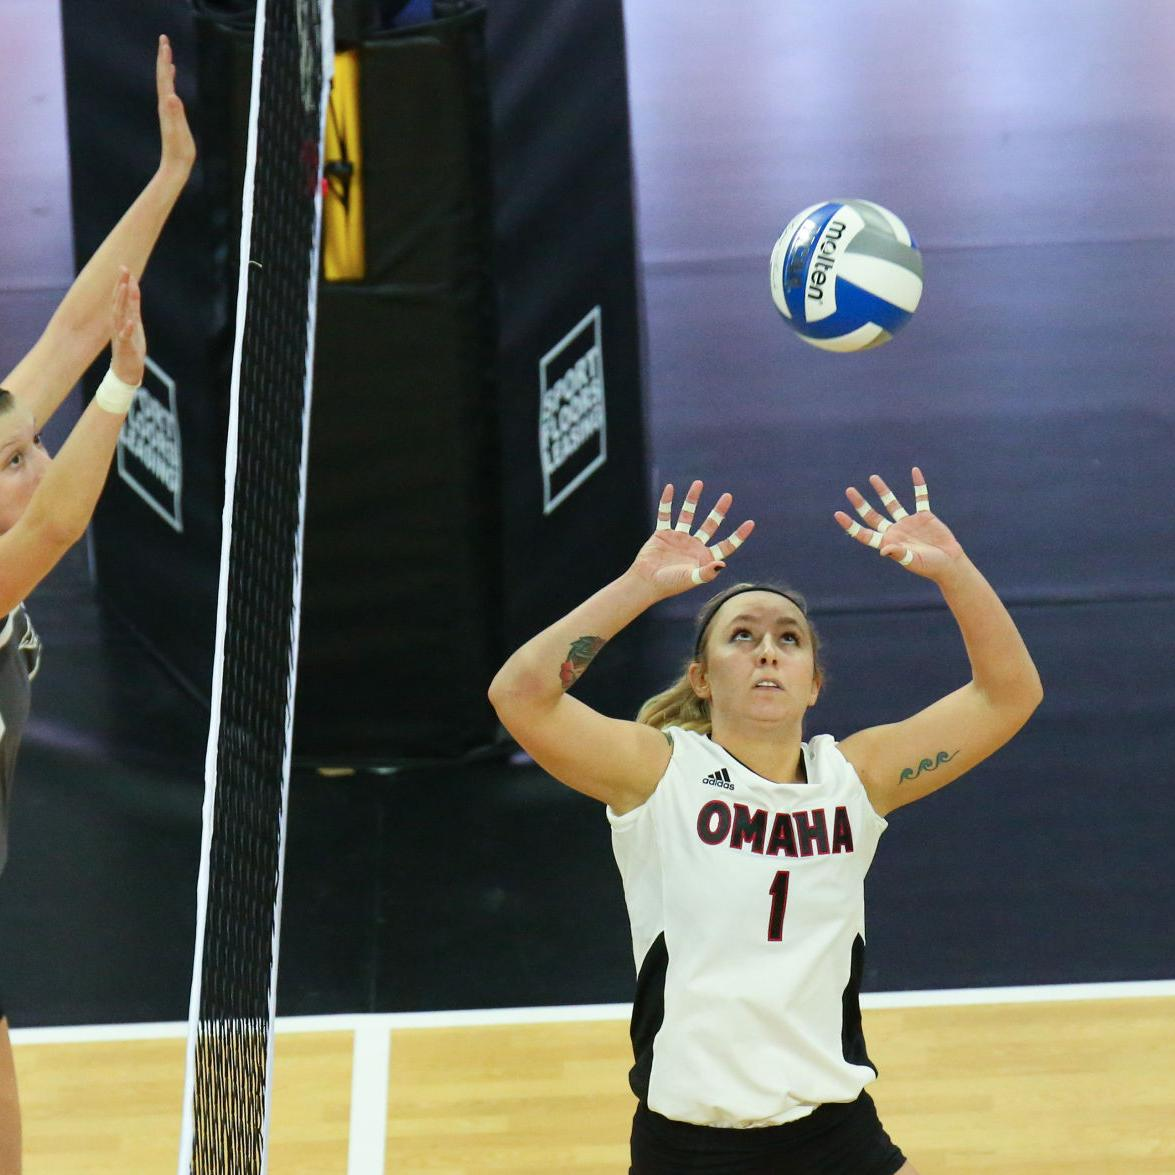 With Huskers coming to Baxter Arena, the Omaha Challenge is what senior setter Sydney O'Shaughnessy envisioned for UNO